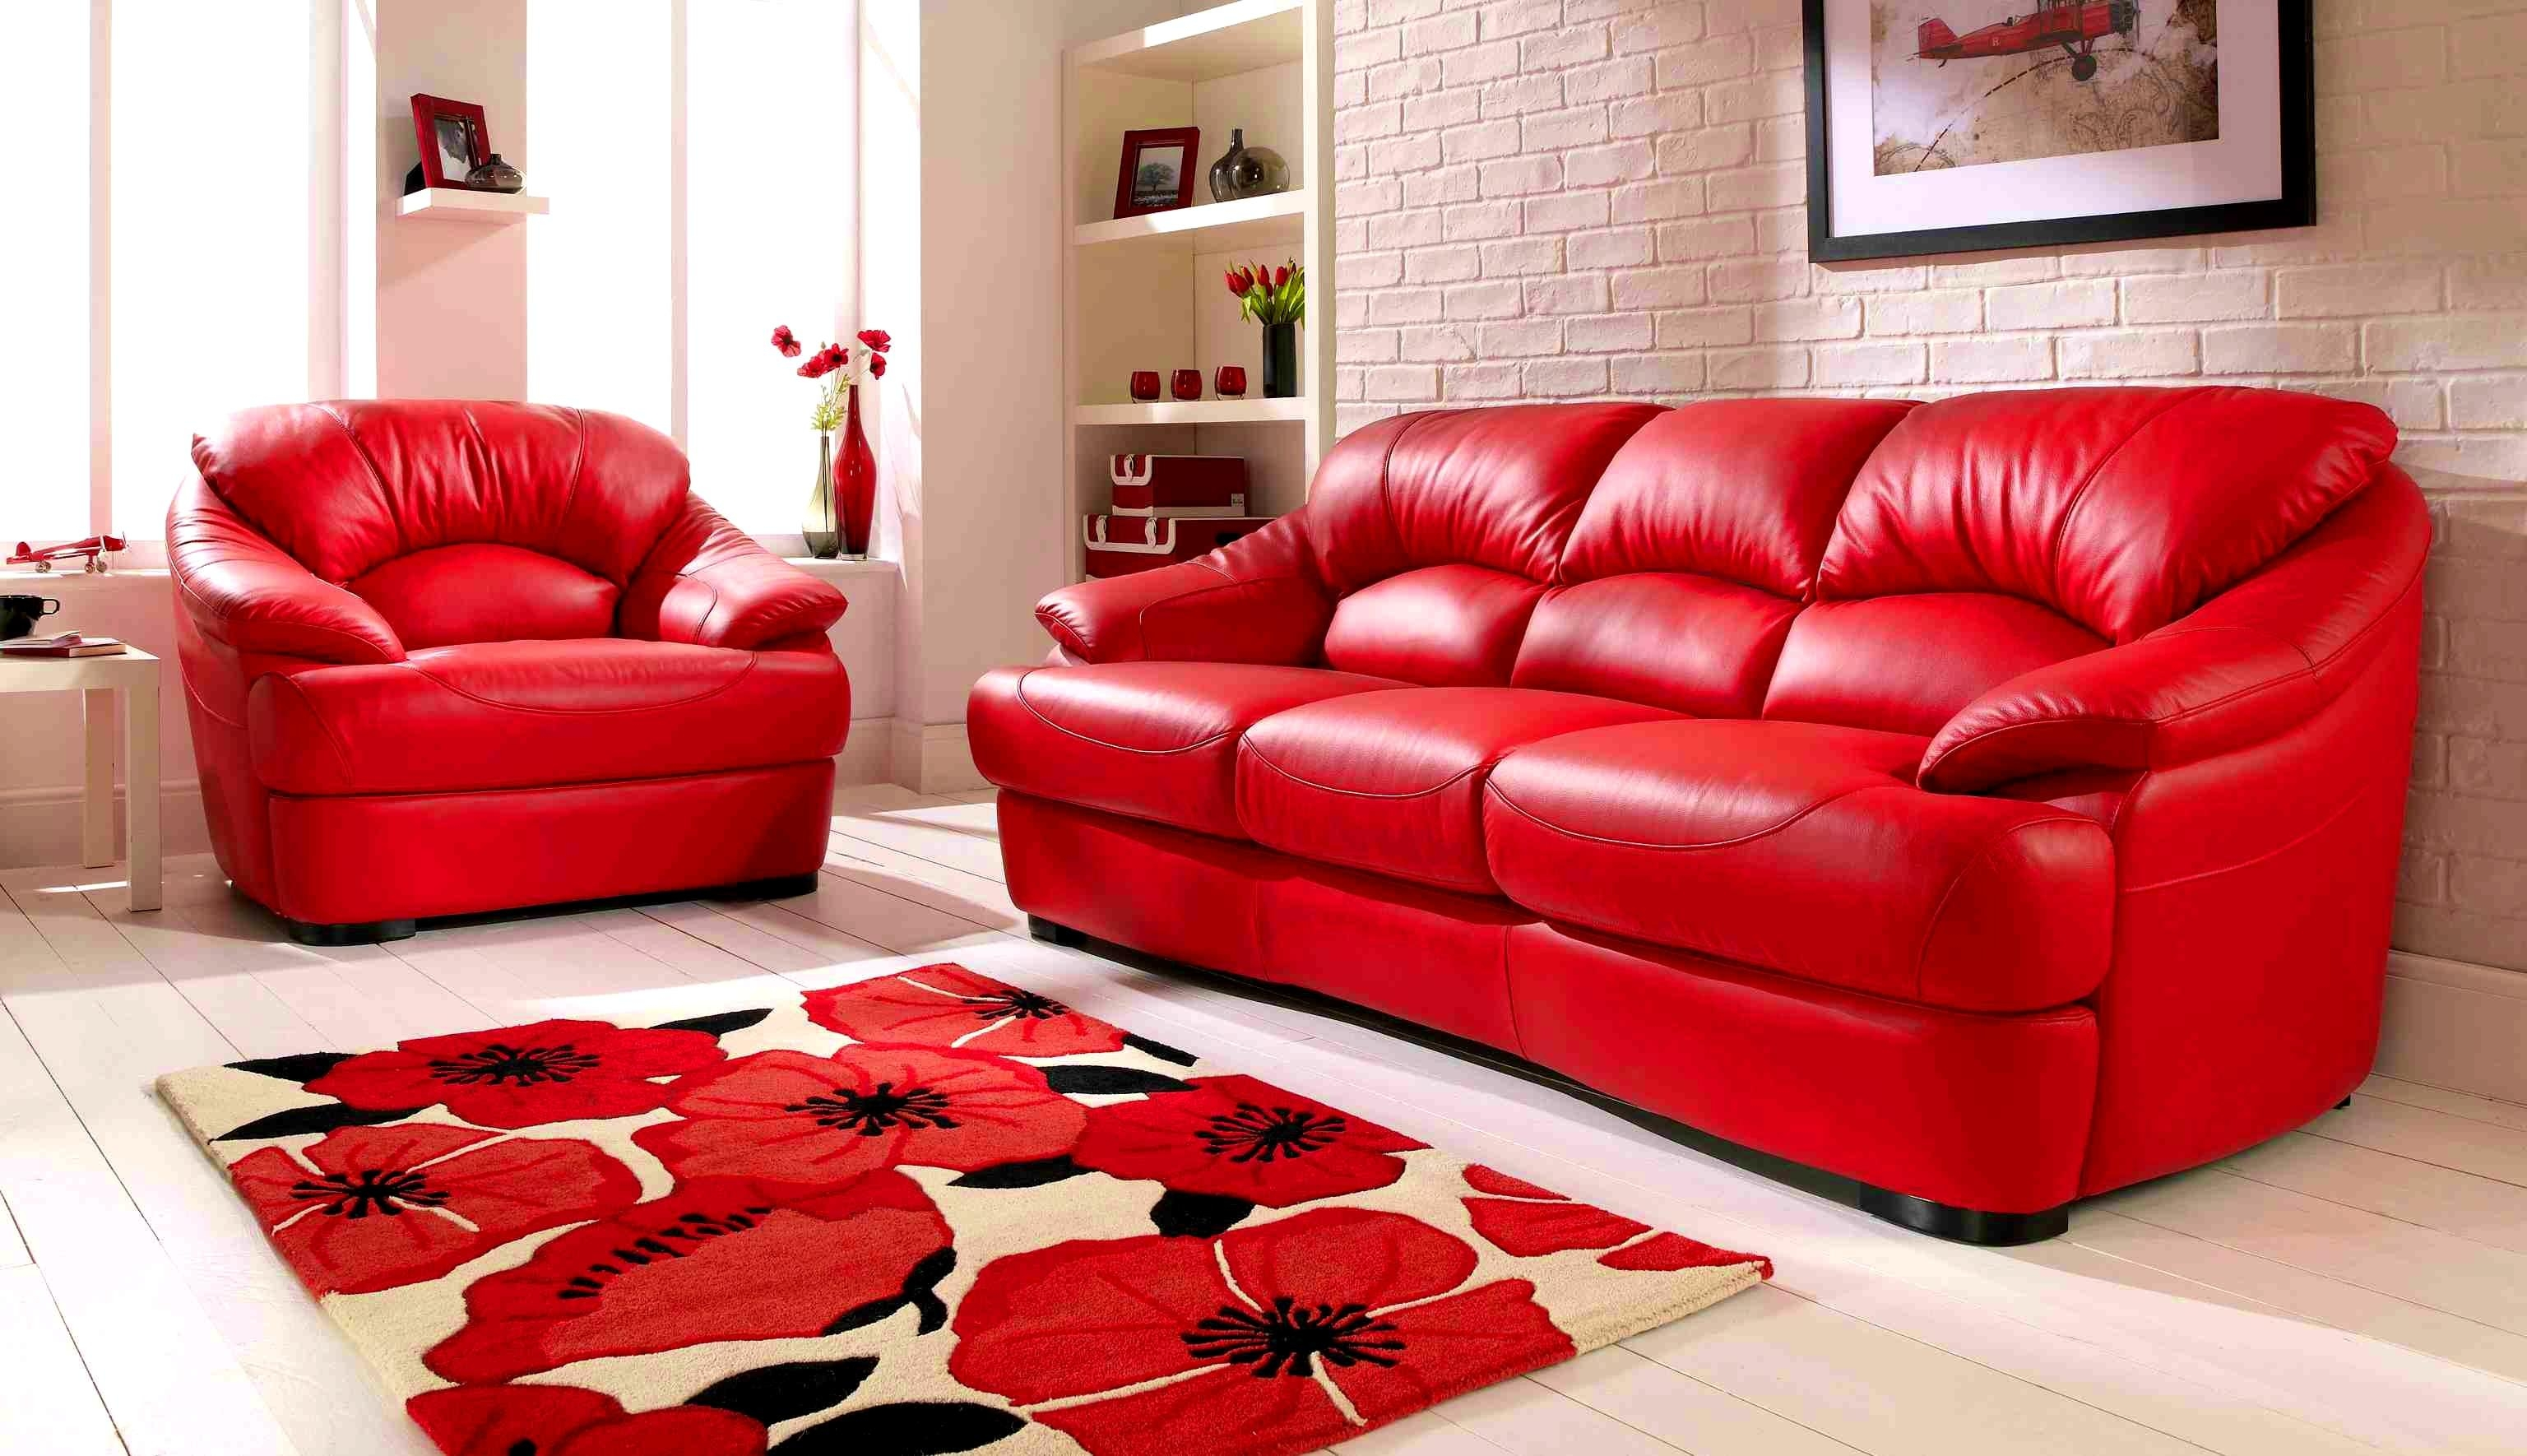 Cheap Red Sofas In Cheap Red Sofas (View 6 of 20)